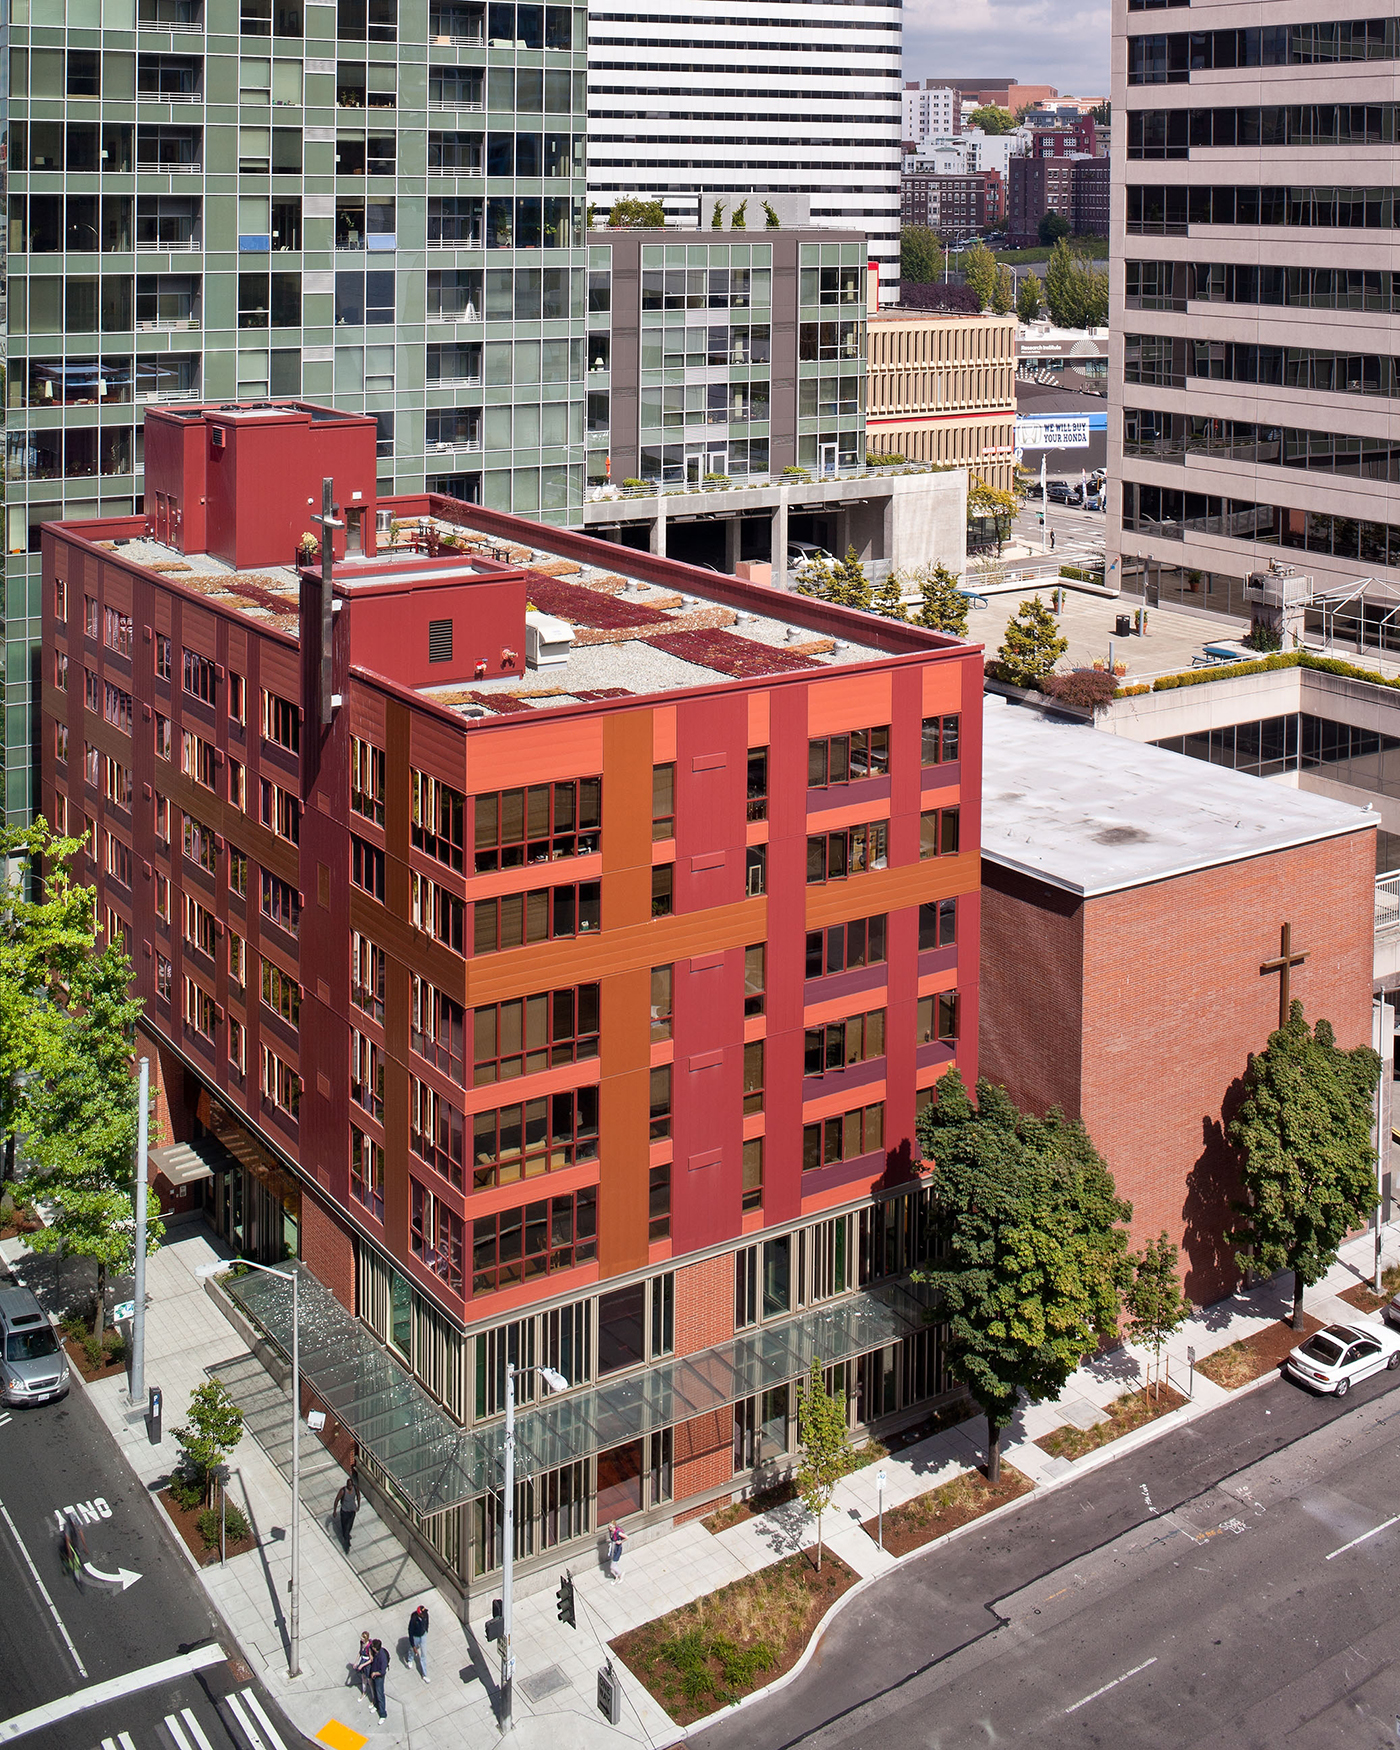 Cheap Apartments Near Journal Square: Seattle Daily Journal Of Commerce